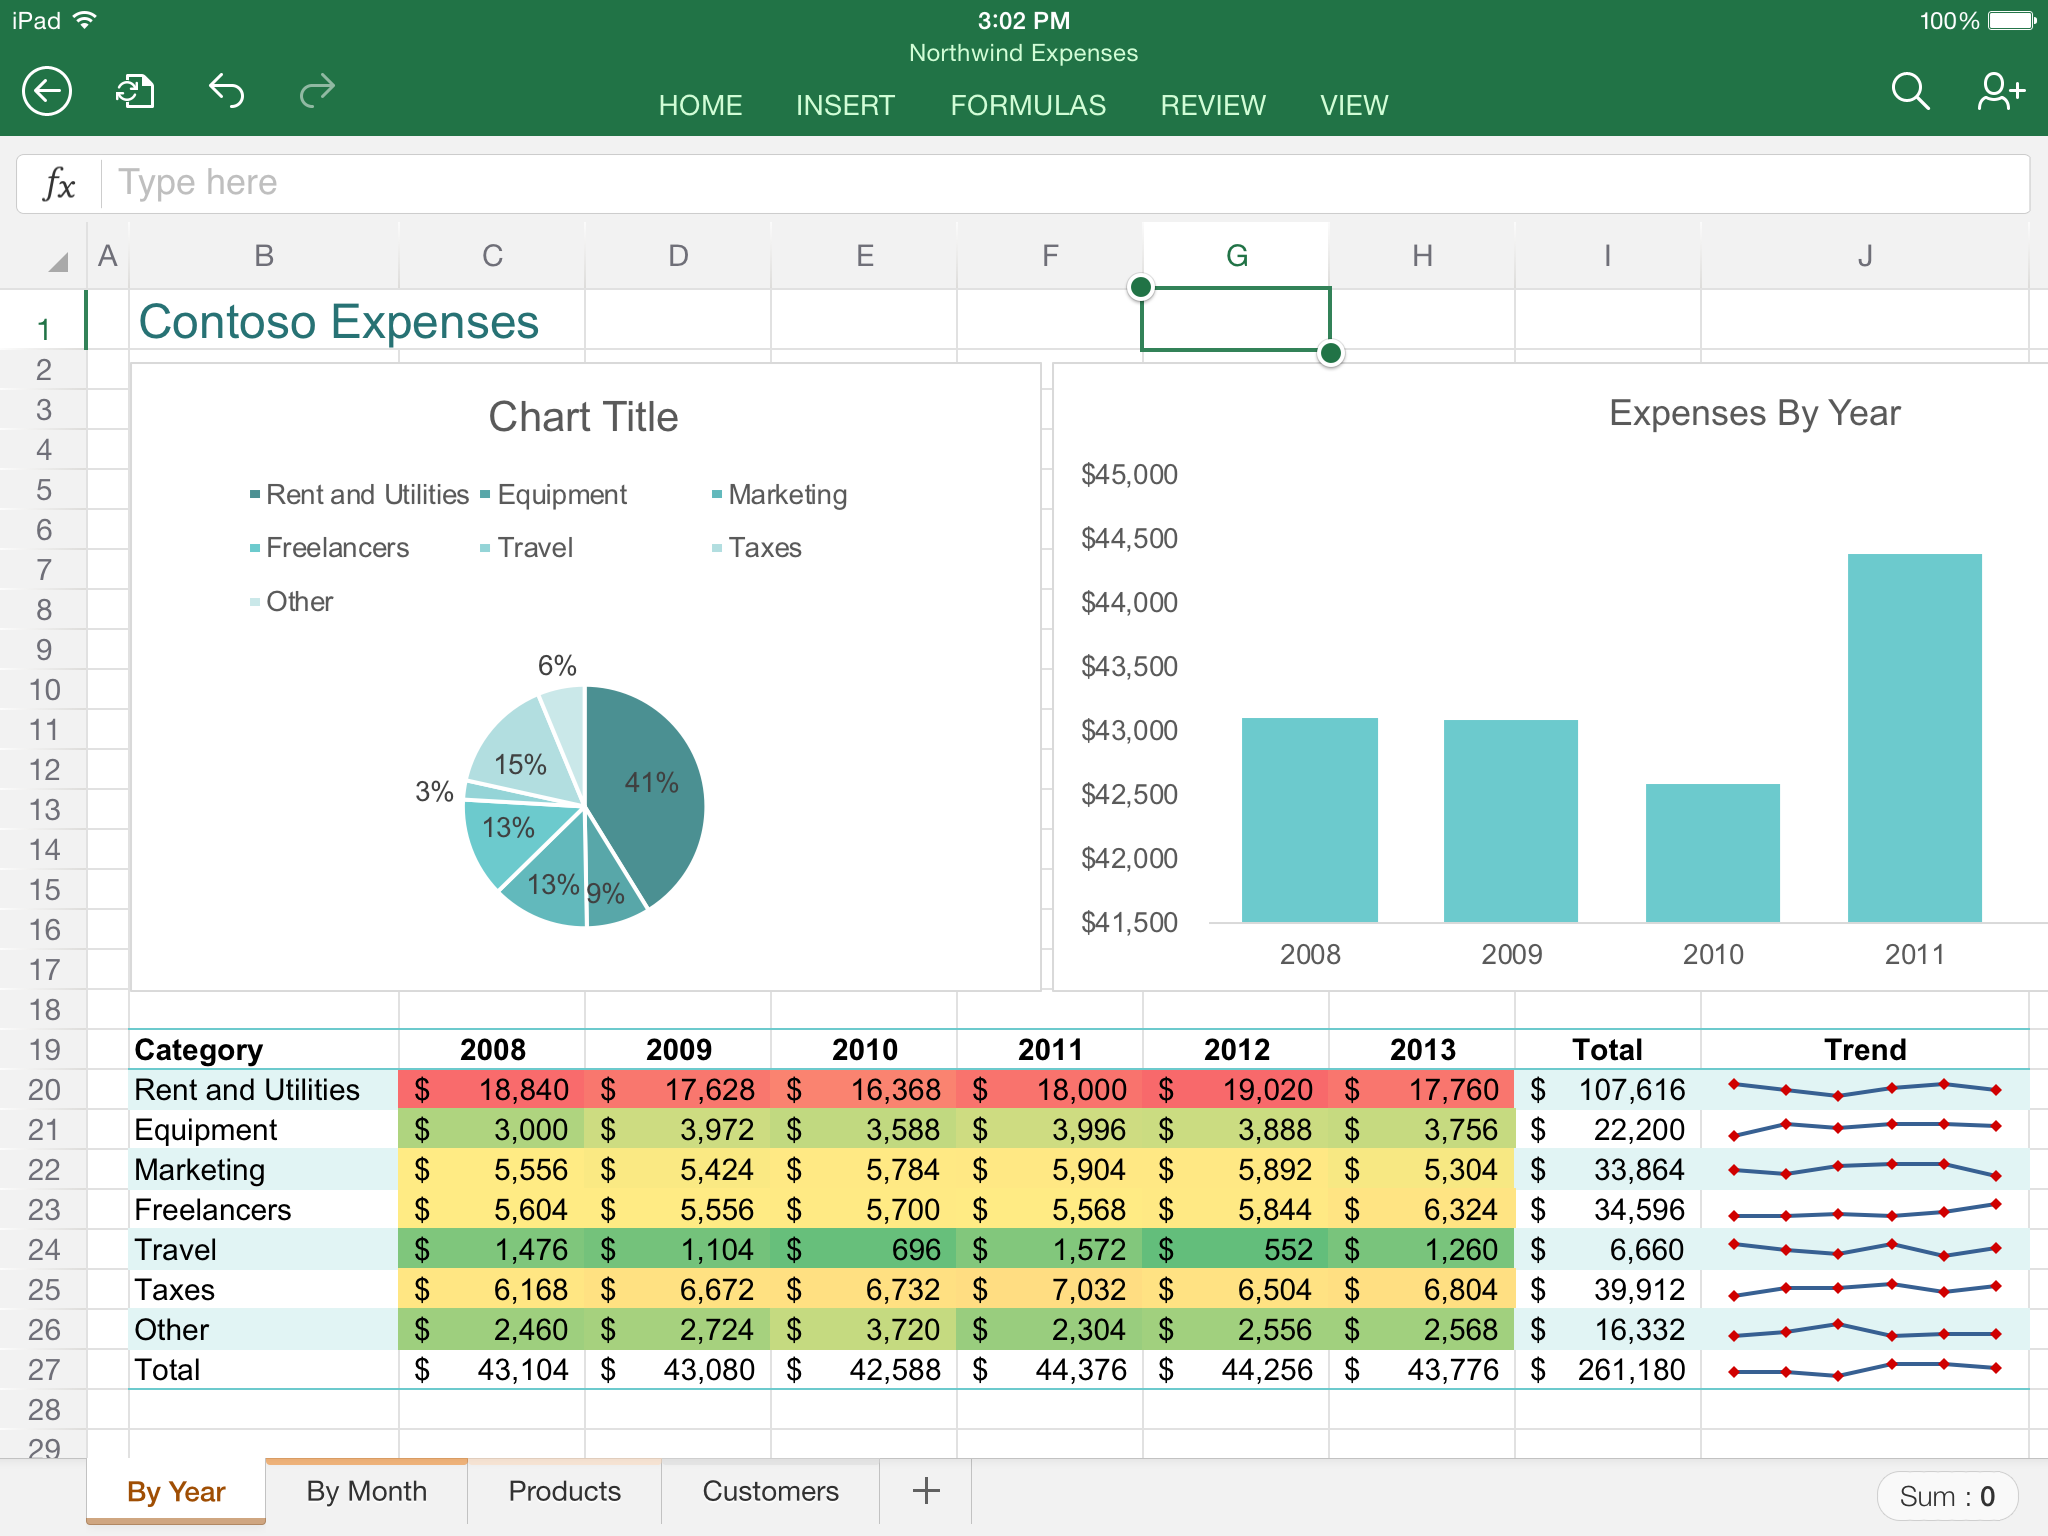 Ediblewildsus  Remarkable App Highlight Excel  Mobile Digital Now With Licious Excel In Action With Extraordinary Excel Express Also Macros In Excel  In Addition Mileage Tracker Excel And Dashboard Excel Templates As Well As Creating A Pivot Table In Excel  Additionally Excel Date Comparison From Youstonybrookedu With Ediblewildsus  Licious App Highlight Excel  Mobile Digital Now With Extraordinary Excel In Action And Remarkable Excel Express Also Macros In Excel  In Addition Mileage Tracker Excel From Youstonybrookedu